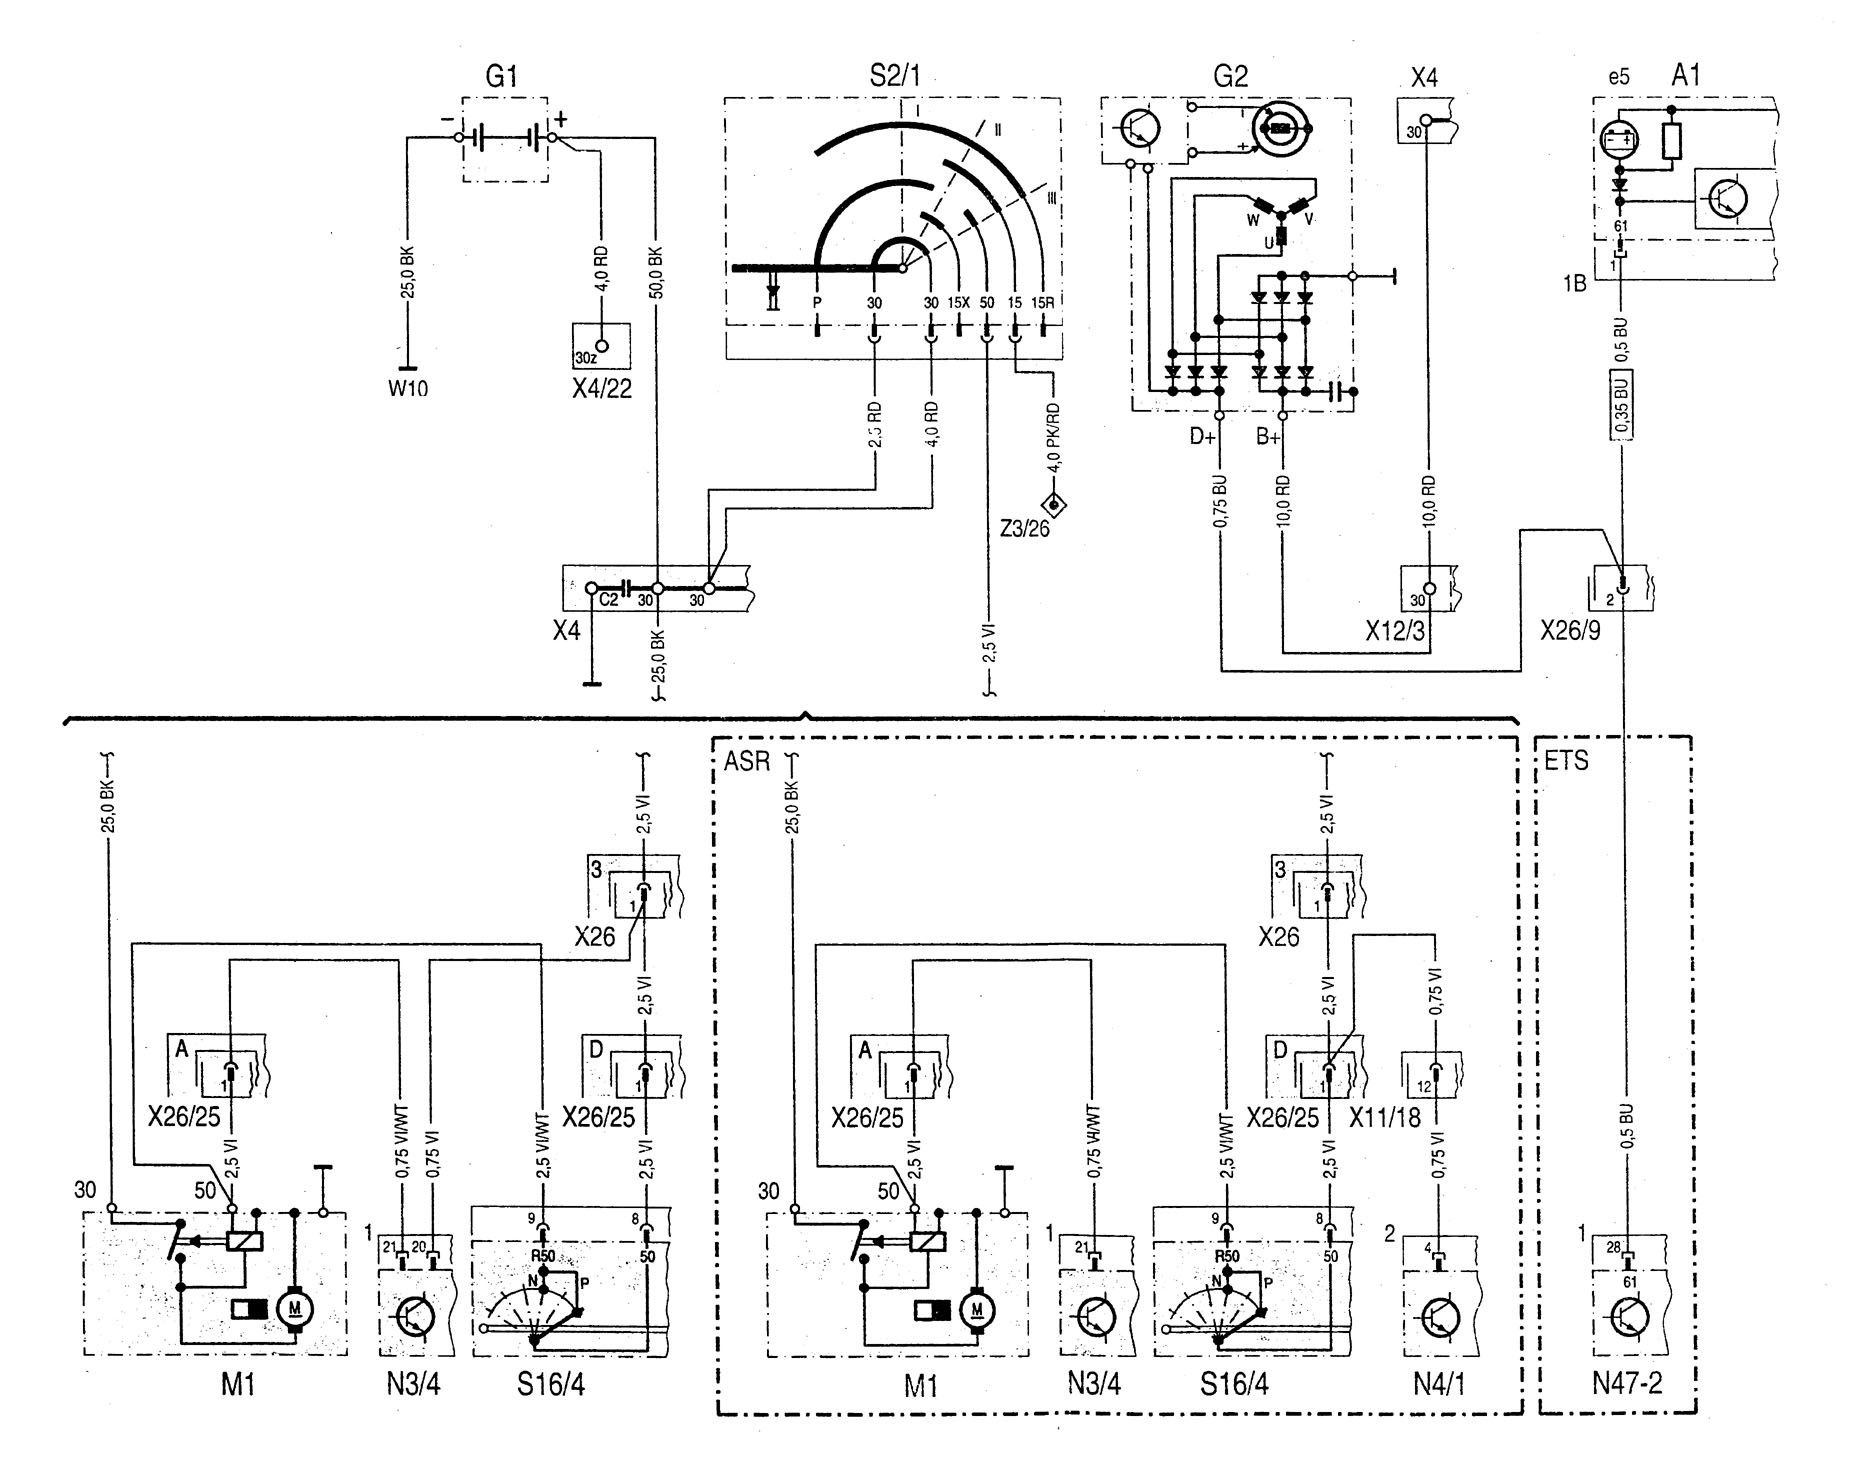 Mercedes Benz Start Wiring Diagram Electrical Diagrams 2204 Battery For Wire Data Schema C220 Enthusiast U2022 Rh Rasalibre Co Pdf